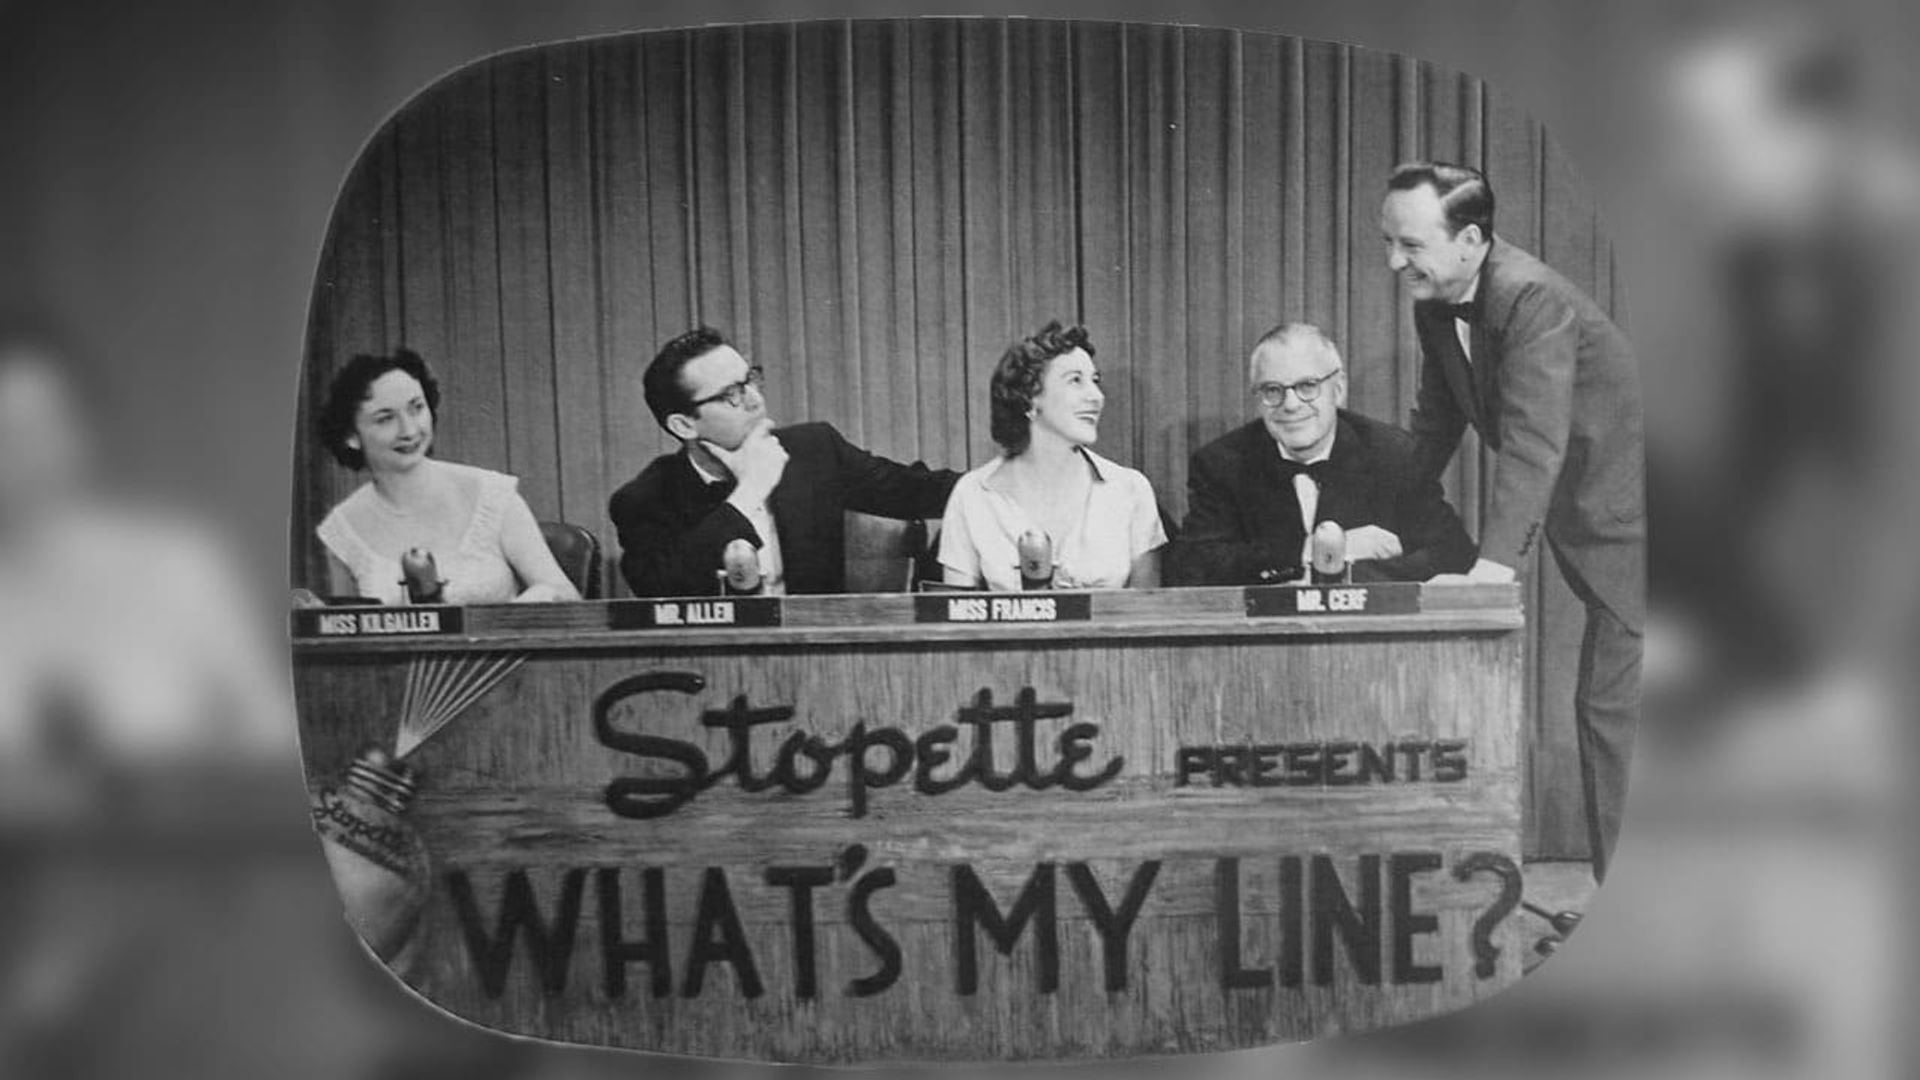 Season 11, Episode 08 Phil Silvers